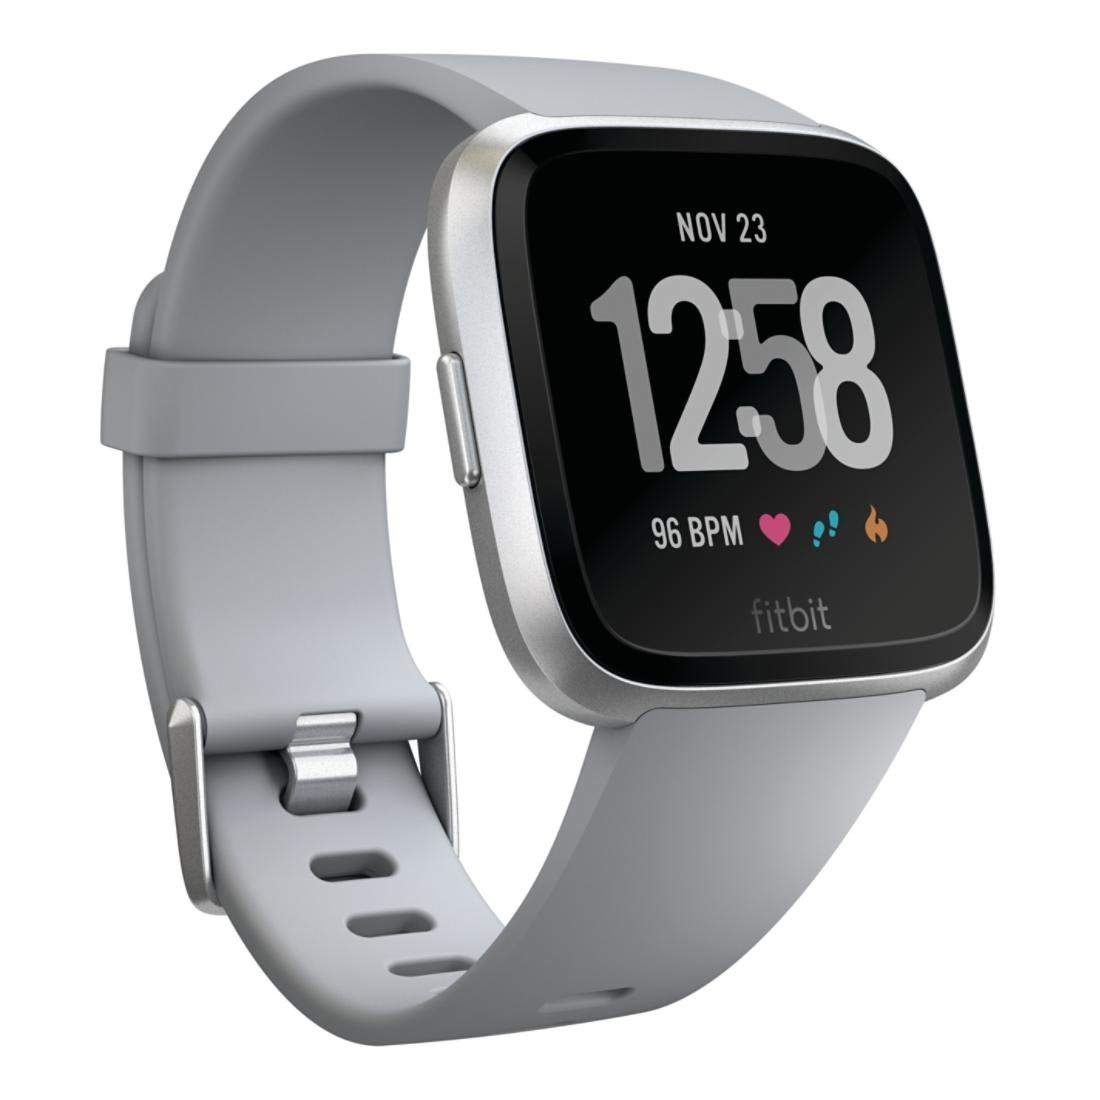 Fitbit Versa Smart Watch, Gray/Silver Aluminium, One Size (S & L Bands Included) by Fitbit